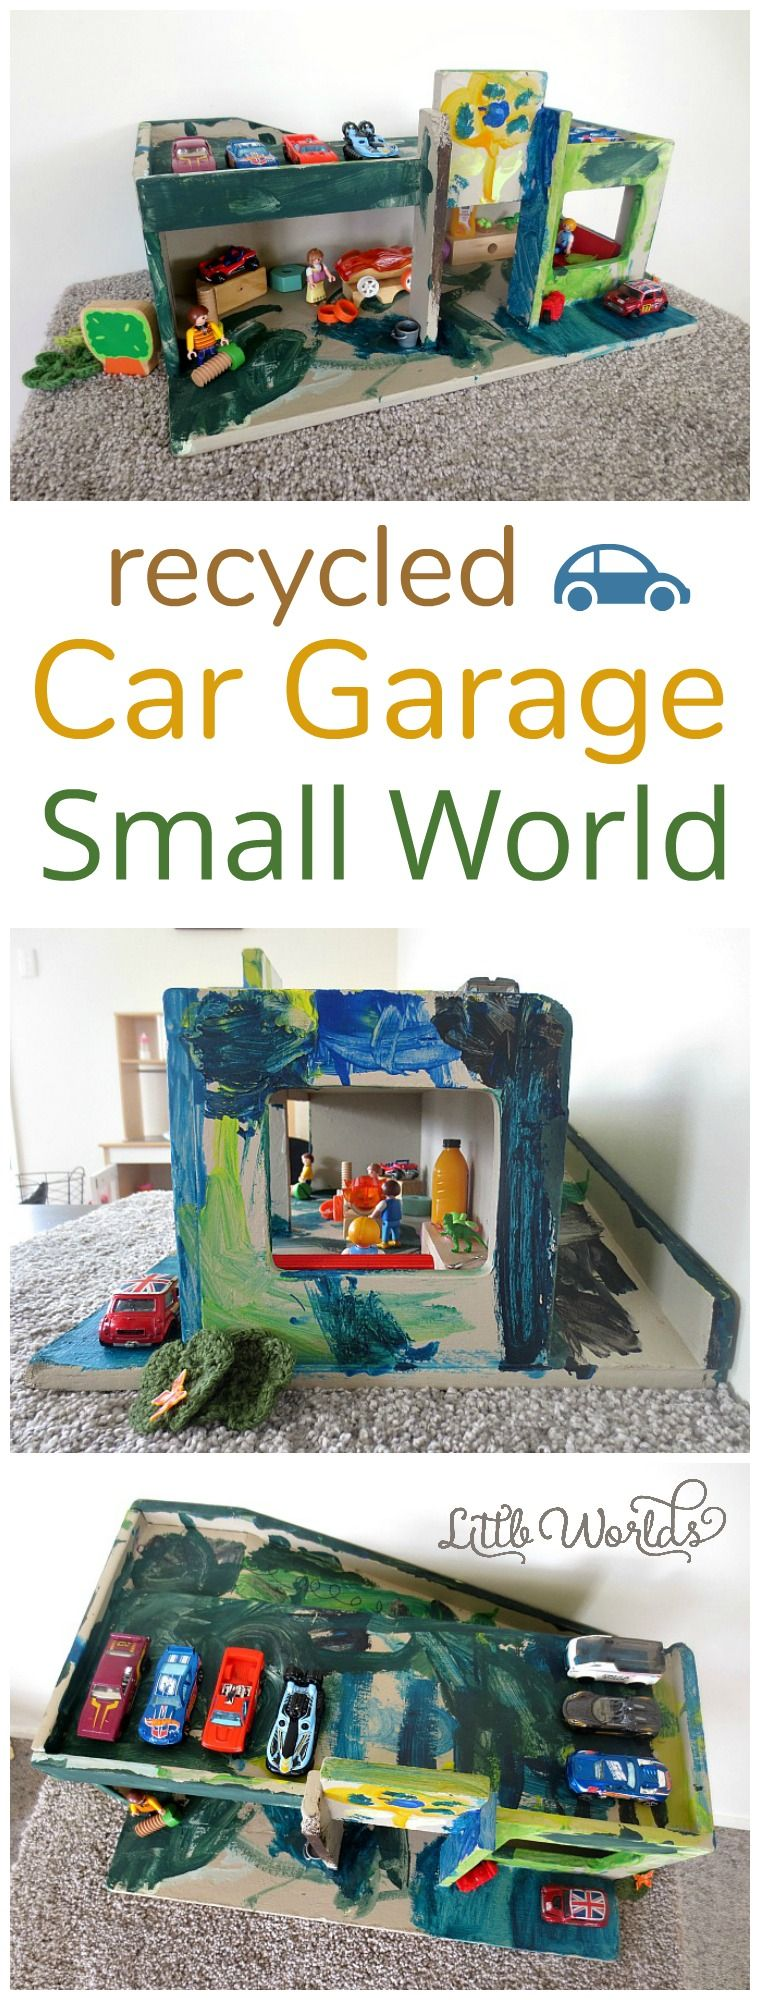 Turning trash into treasure: how to recycle and upcycle a toy car garage into a garage small world. | Little Worlds Big Adventures #car #garage #smallworldplay #smallworld #upcycled #kidsactivities